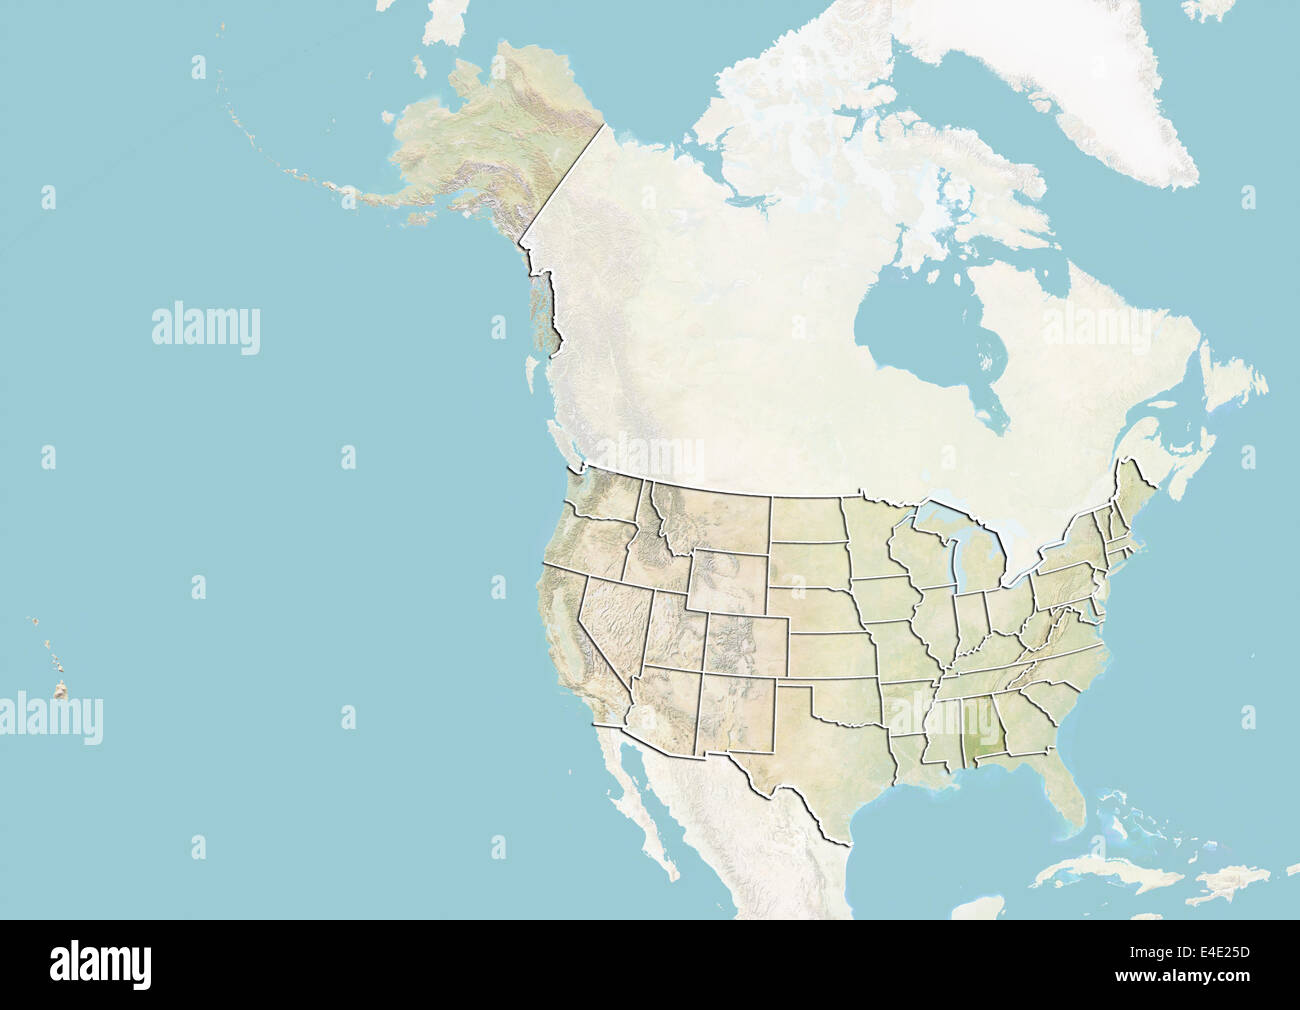 United States And The State Of Alabama Relief Map Stock Photo